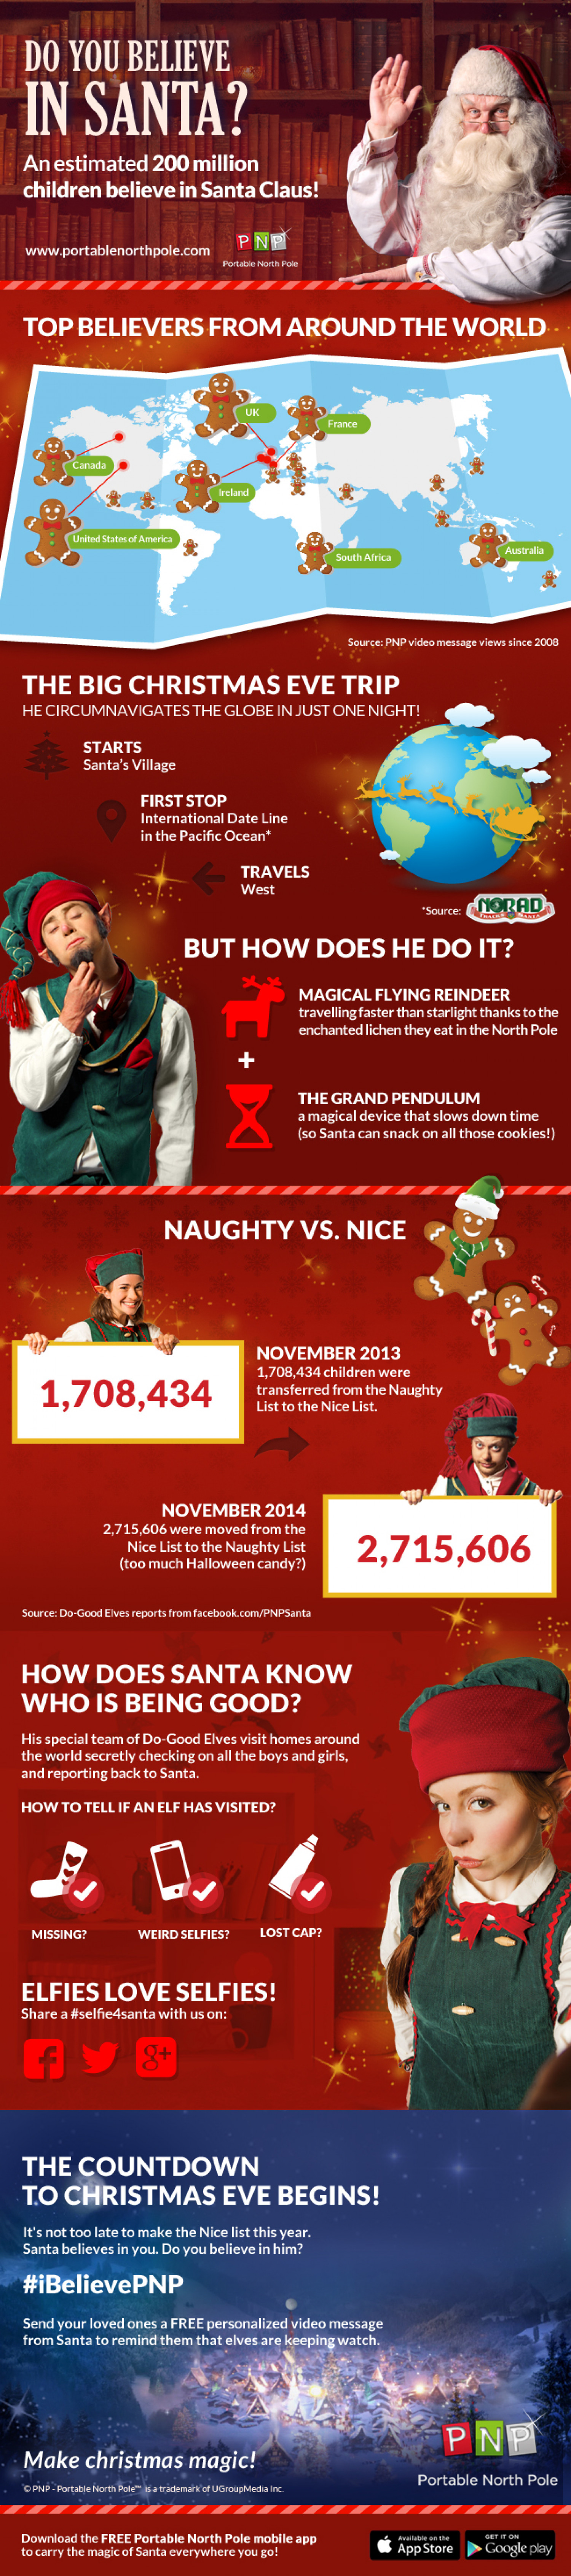 Do You Believe in Santa? Infographic